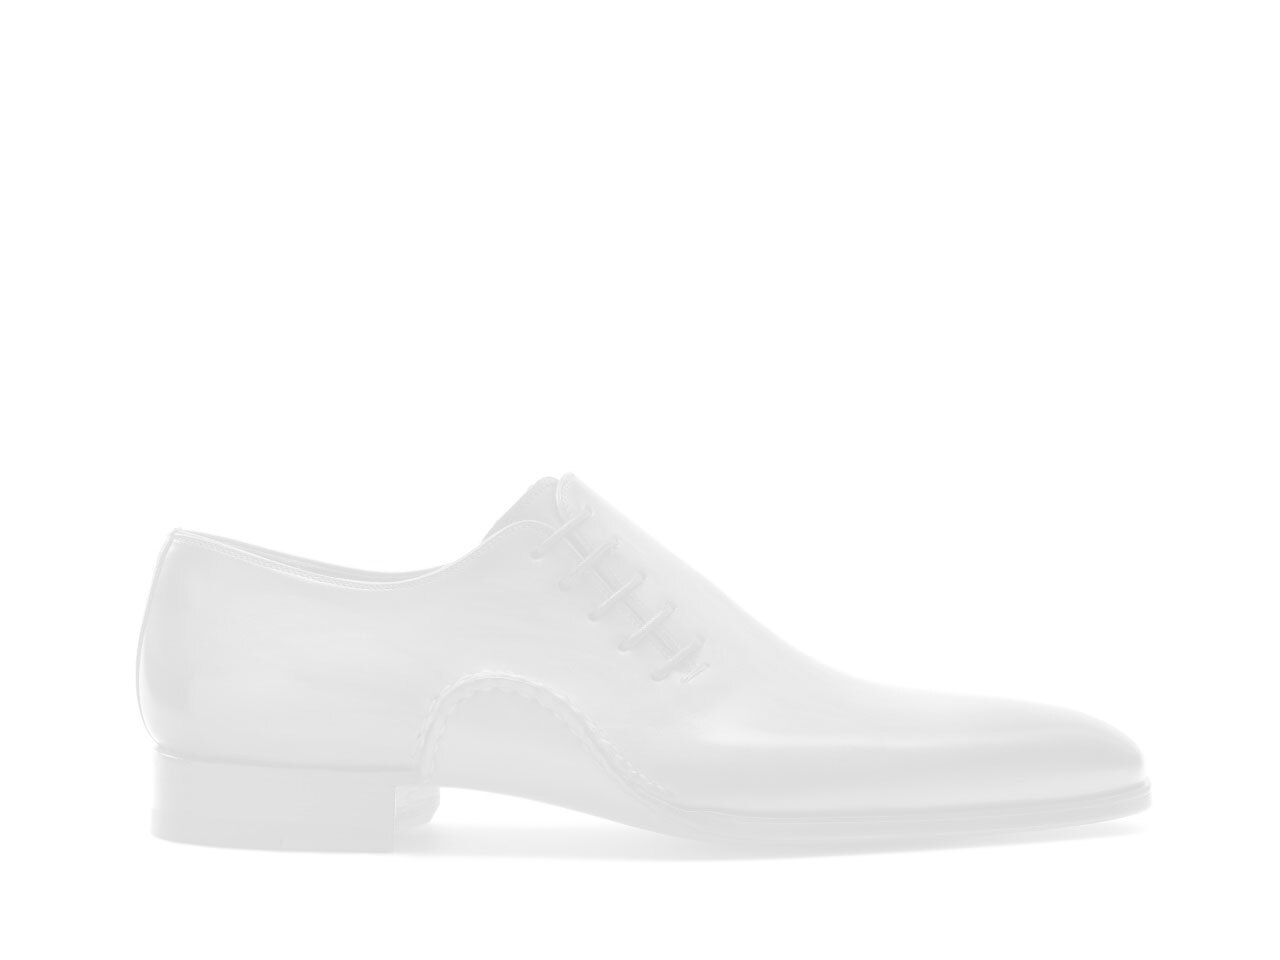 Sole of the Magnanni Reina Torba Men's Sneakers